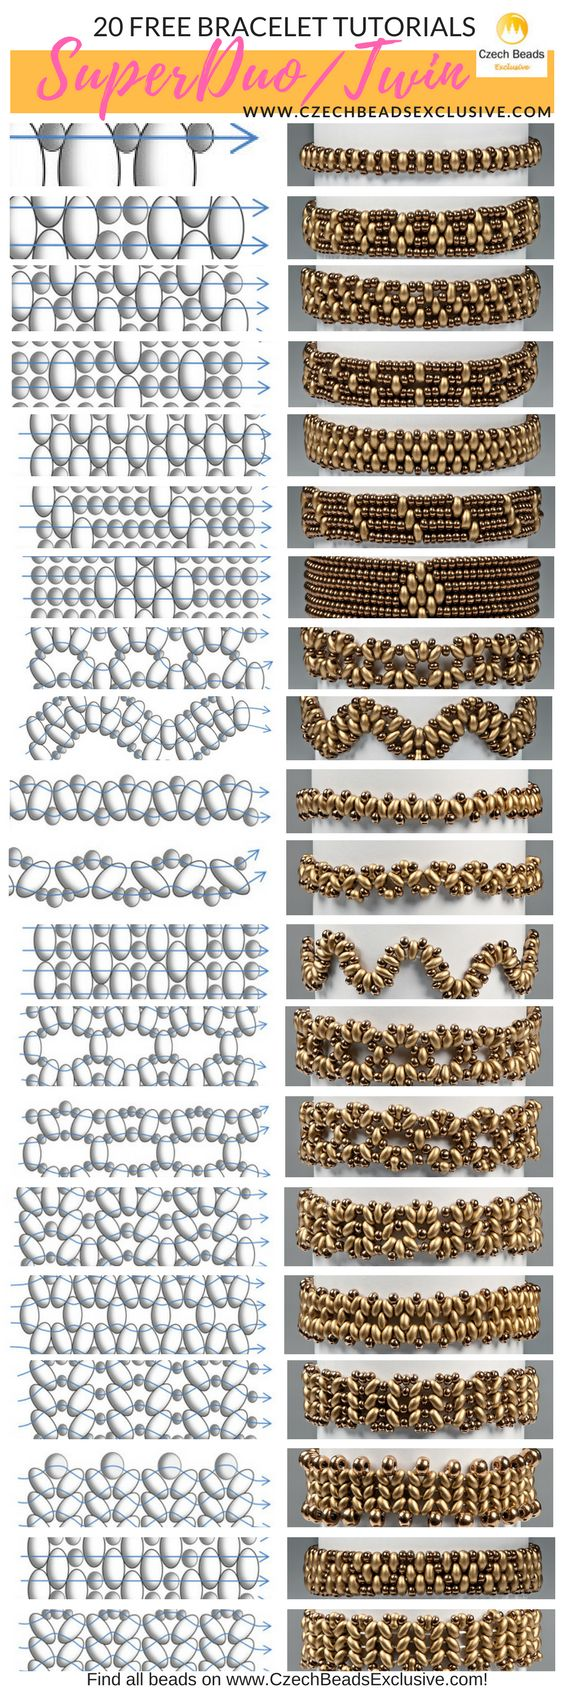 Czech Glass SuperDuo or Twin Beads - 20 Easy SuperDuo Bracelet Techniques! - SuperDuo Patterns Free /  SuperDuo Tutorials SAVE it --> you can find all materials on www.CzechBeadsExclusive.com ------ #superduobeads #seedbeads #superduo #czechglassbeads #glassbeads #CzechBeadsExclusive #czechbeads #glassbeads #bead #beaded #superduo #beadedjewelry #handmade #etsy #dawanda #amazon #diy #czechglass #glassbeads #freetutorials #freepattern #tutorials